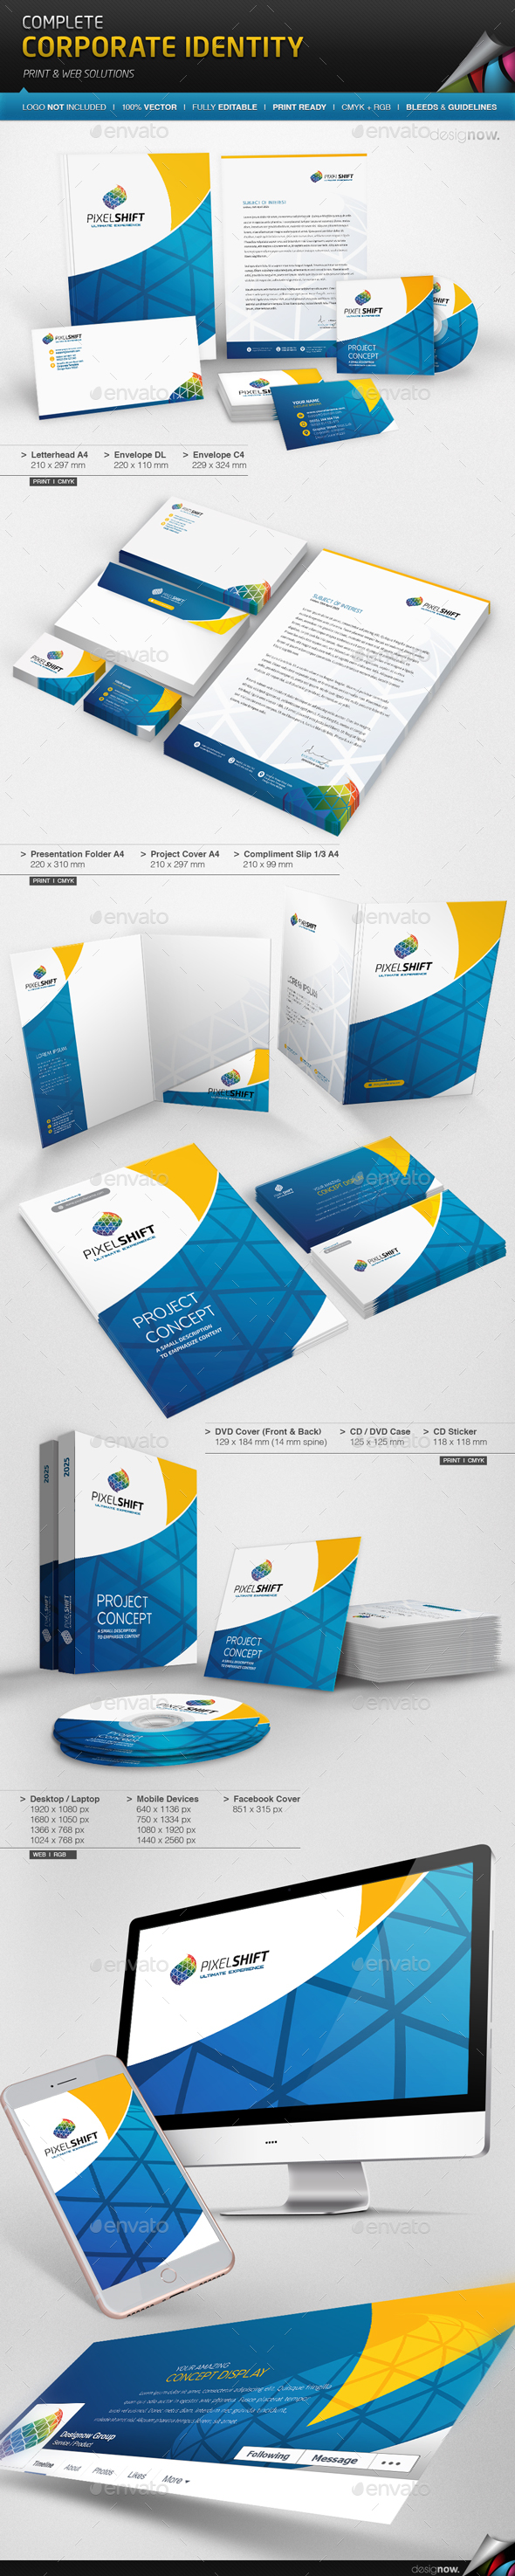 Corporate Identity - Pixel Shift - Stationery Print Templates